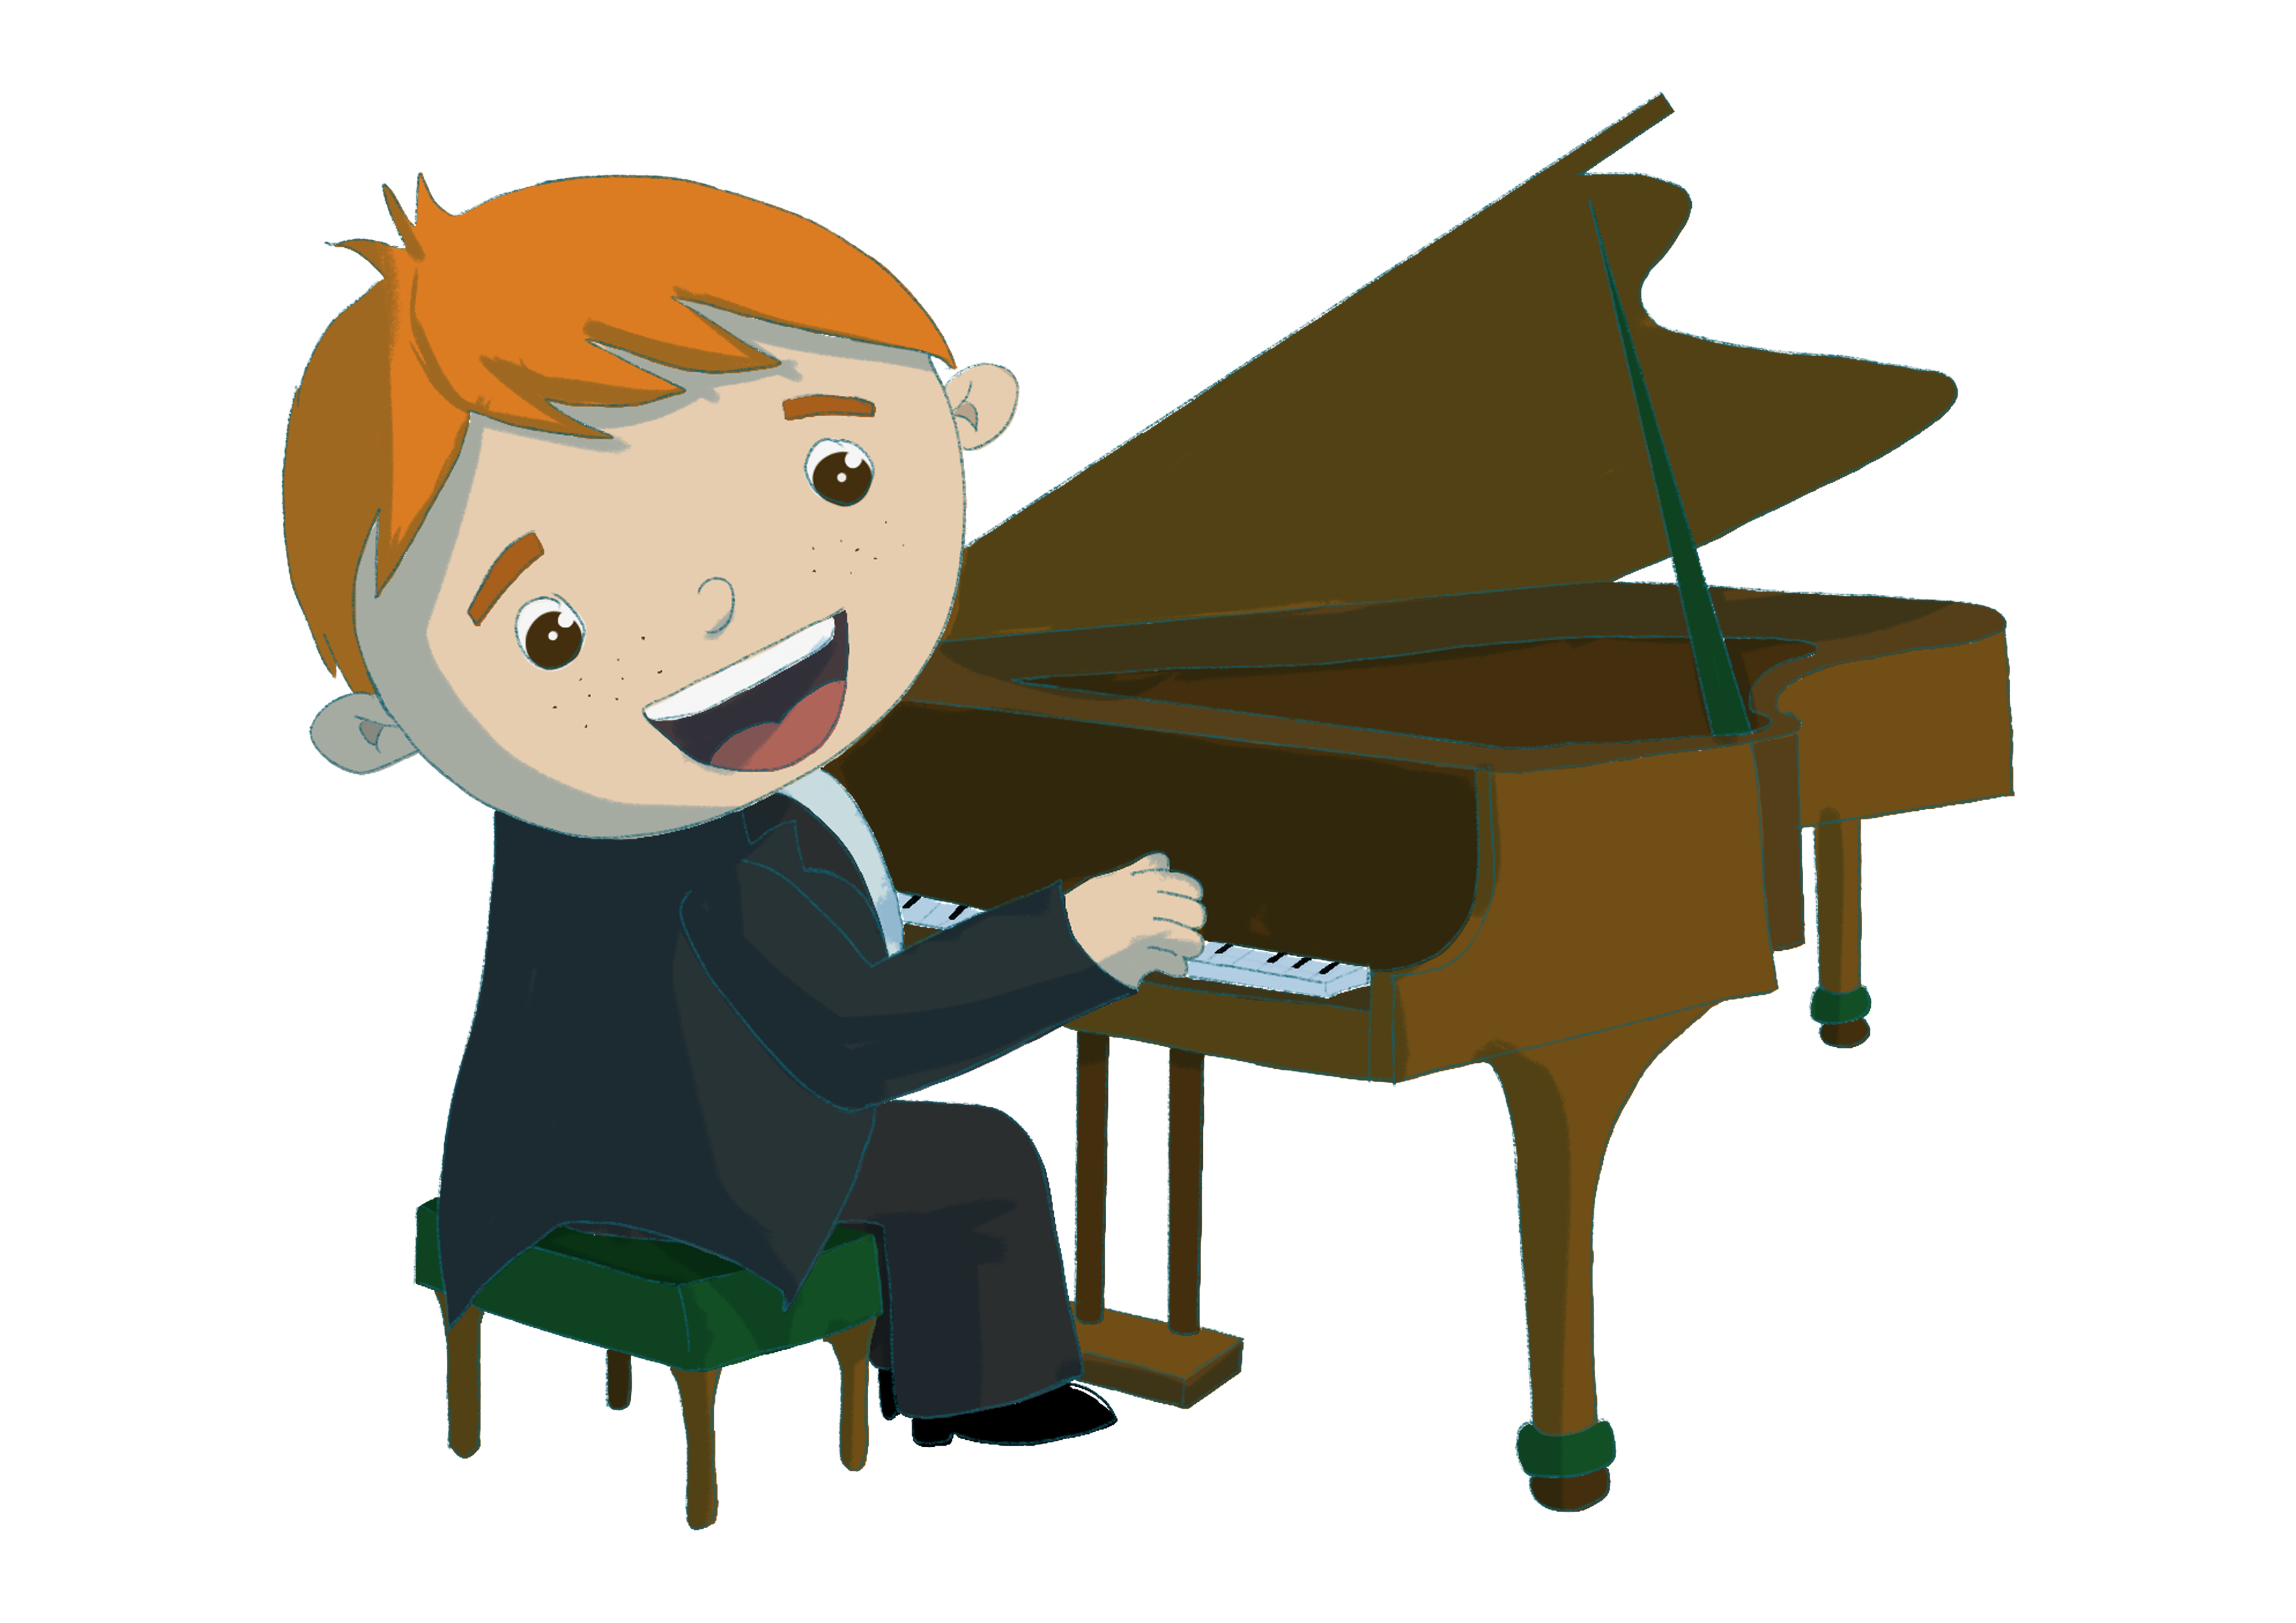 Kids playing piano clipart graphic library stock Music through the ages. Child playing the piano illustration ... graphic library stock